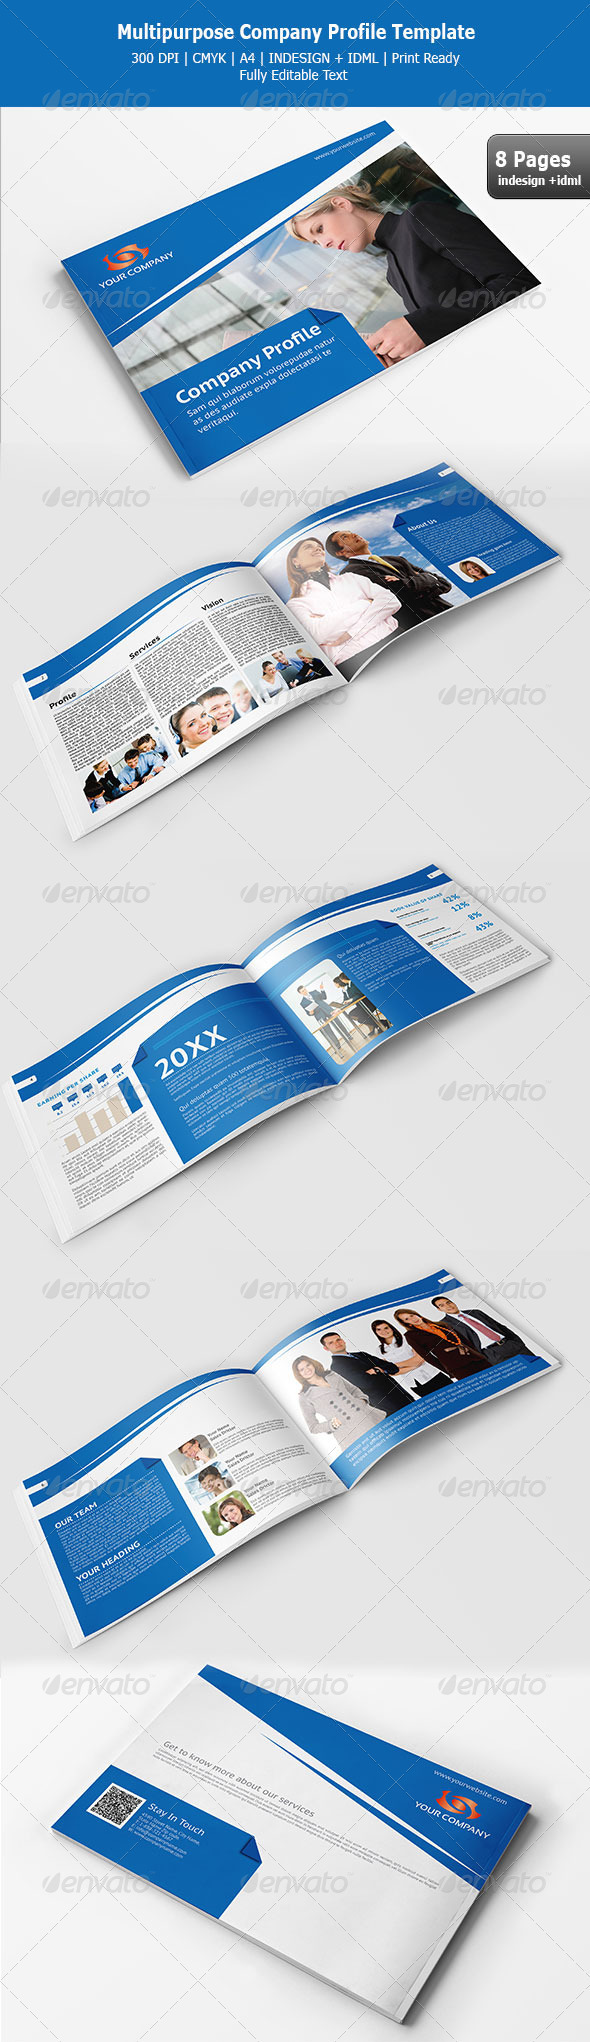 Multipurpose Company Profile Template – Corporate Profile Template